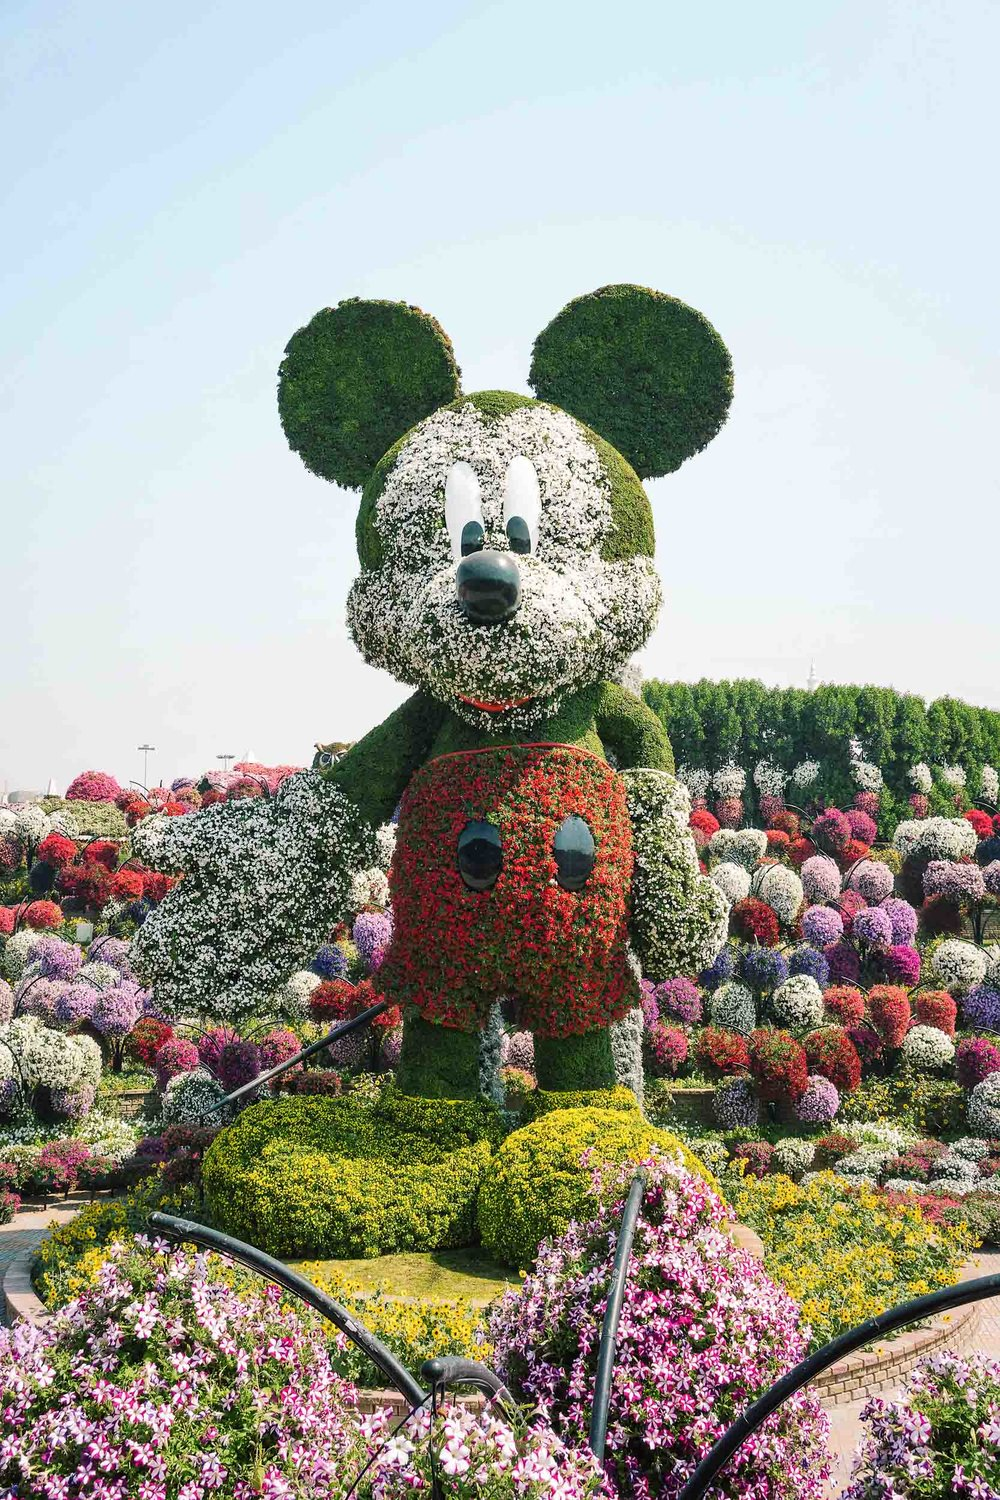 Mickey Mouse at the Dubai Miracle Garden